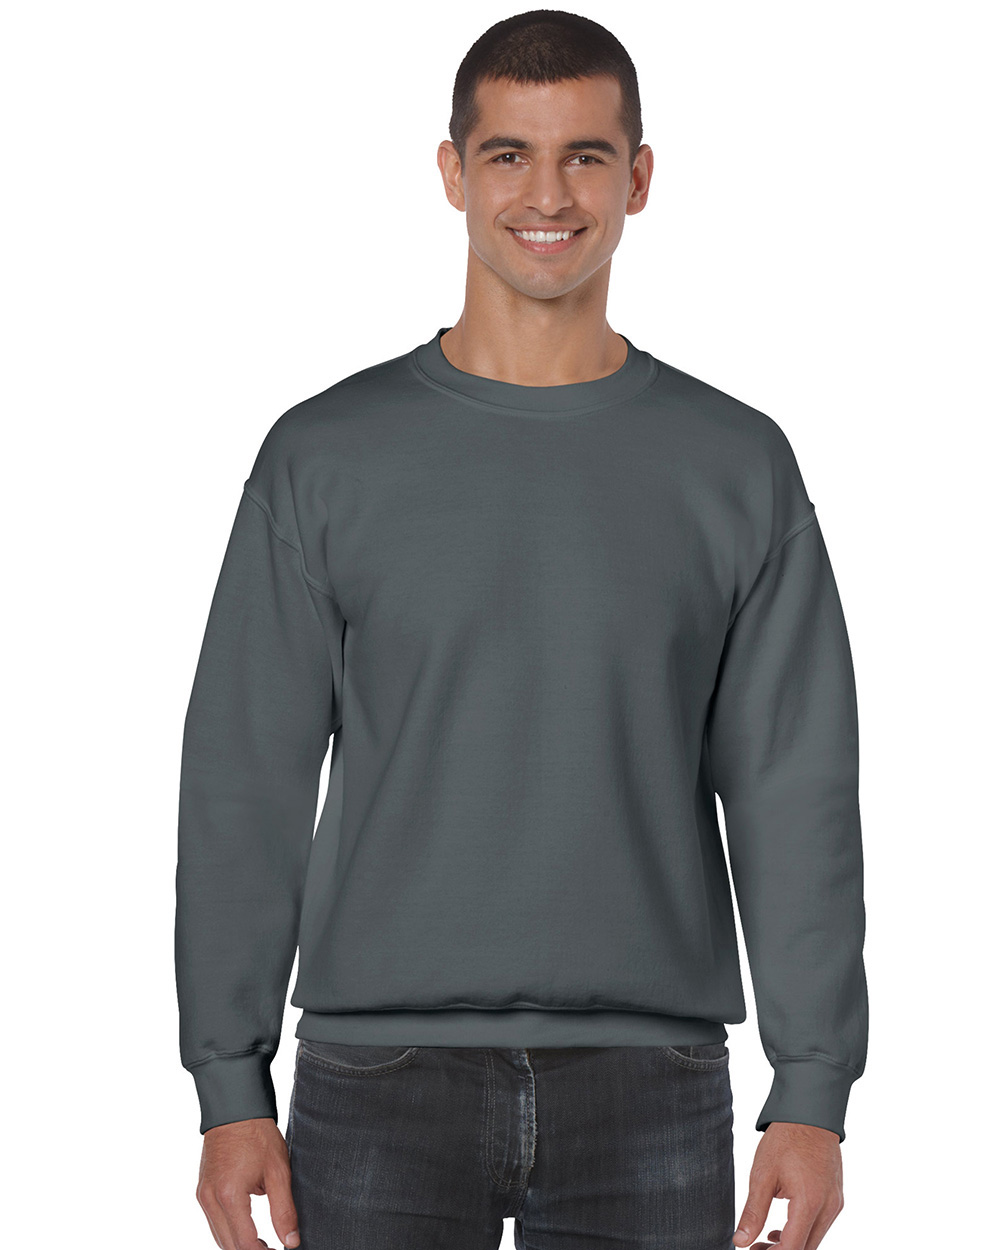 Gildan 18000     Classic Fit Adult Crewneck Sweatshirt    50% Cotton / 50% Polyester Fleece